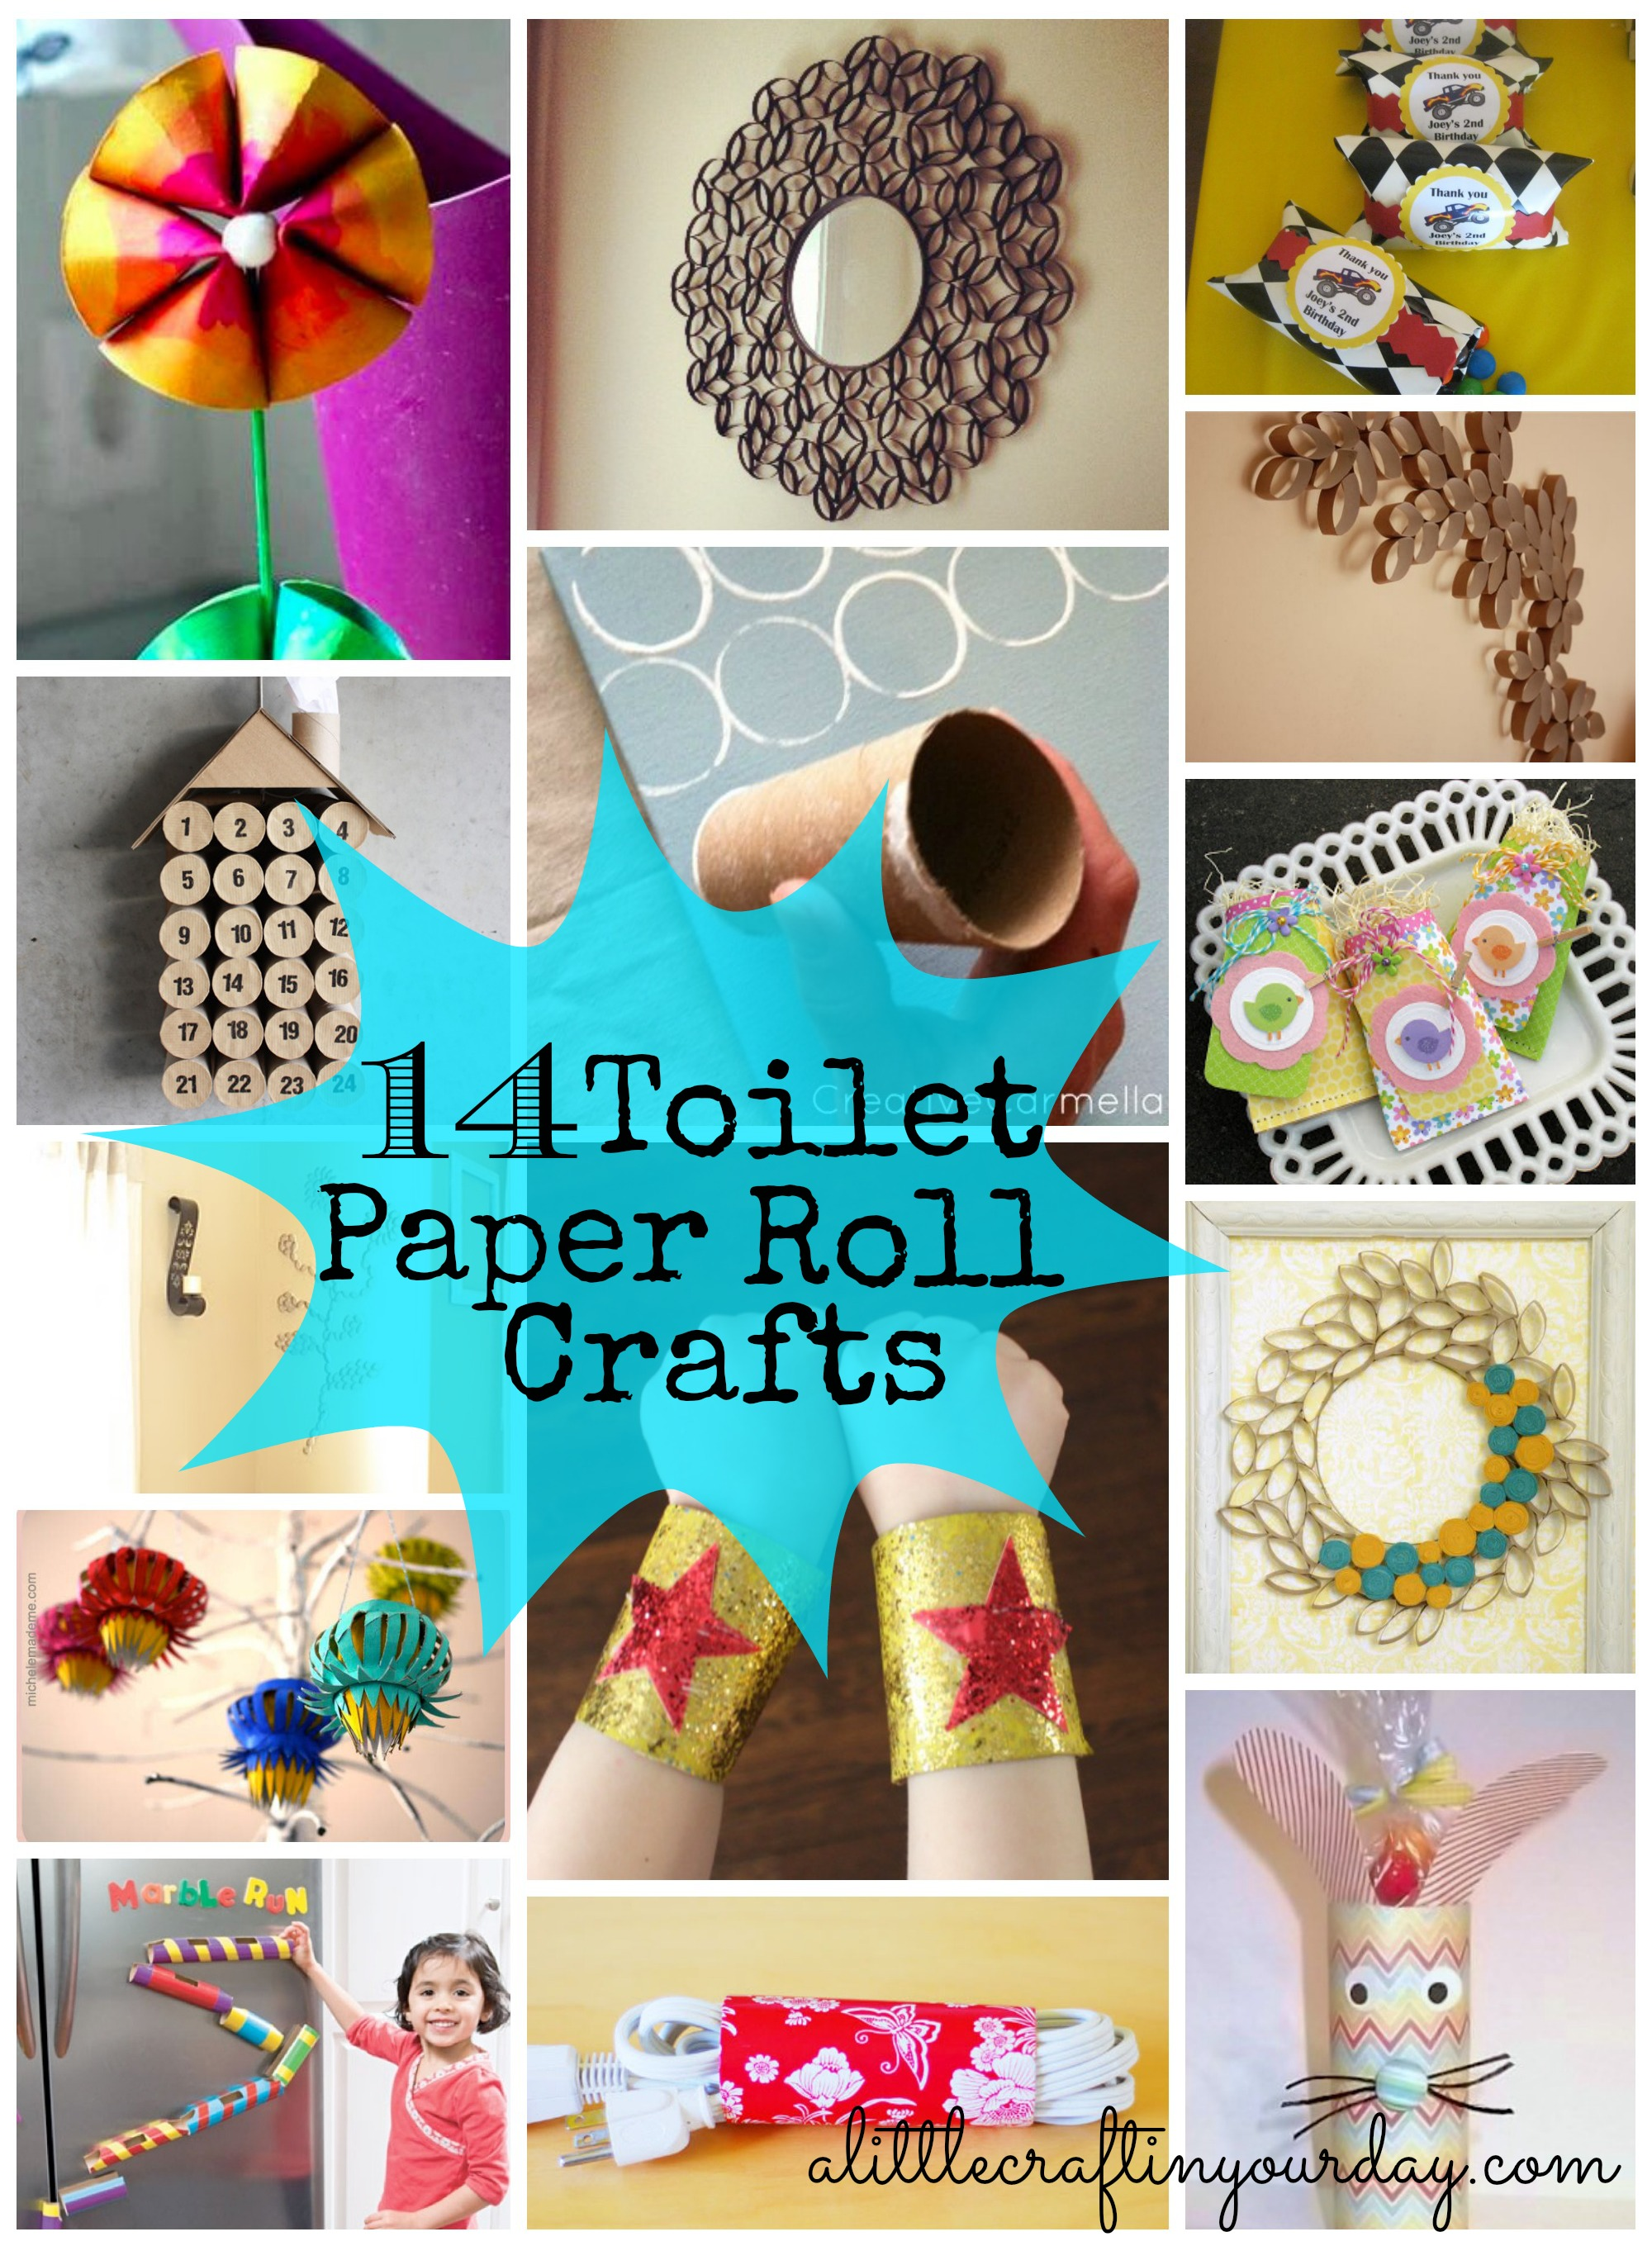 14 toilet paper roll crafts a little craft in your day for Crafts to make out of toilet paper rolls